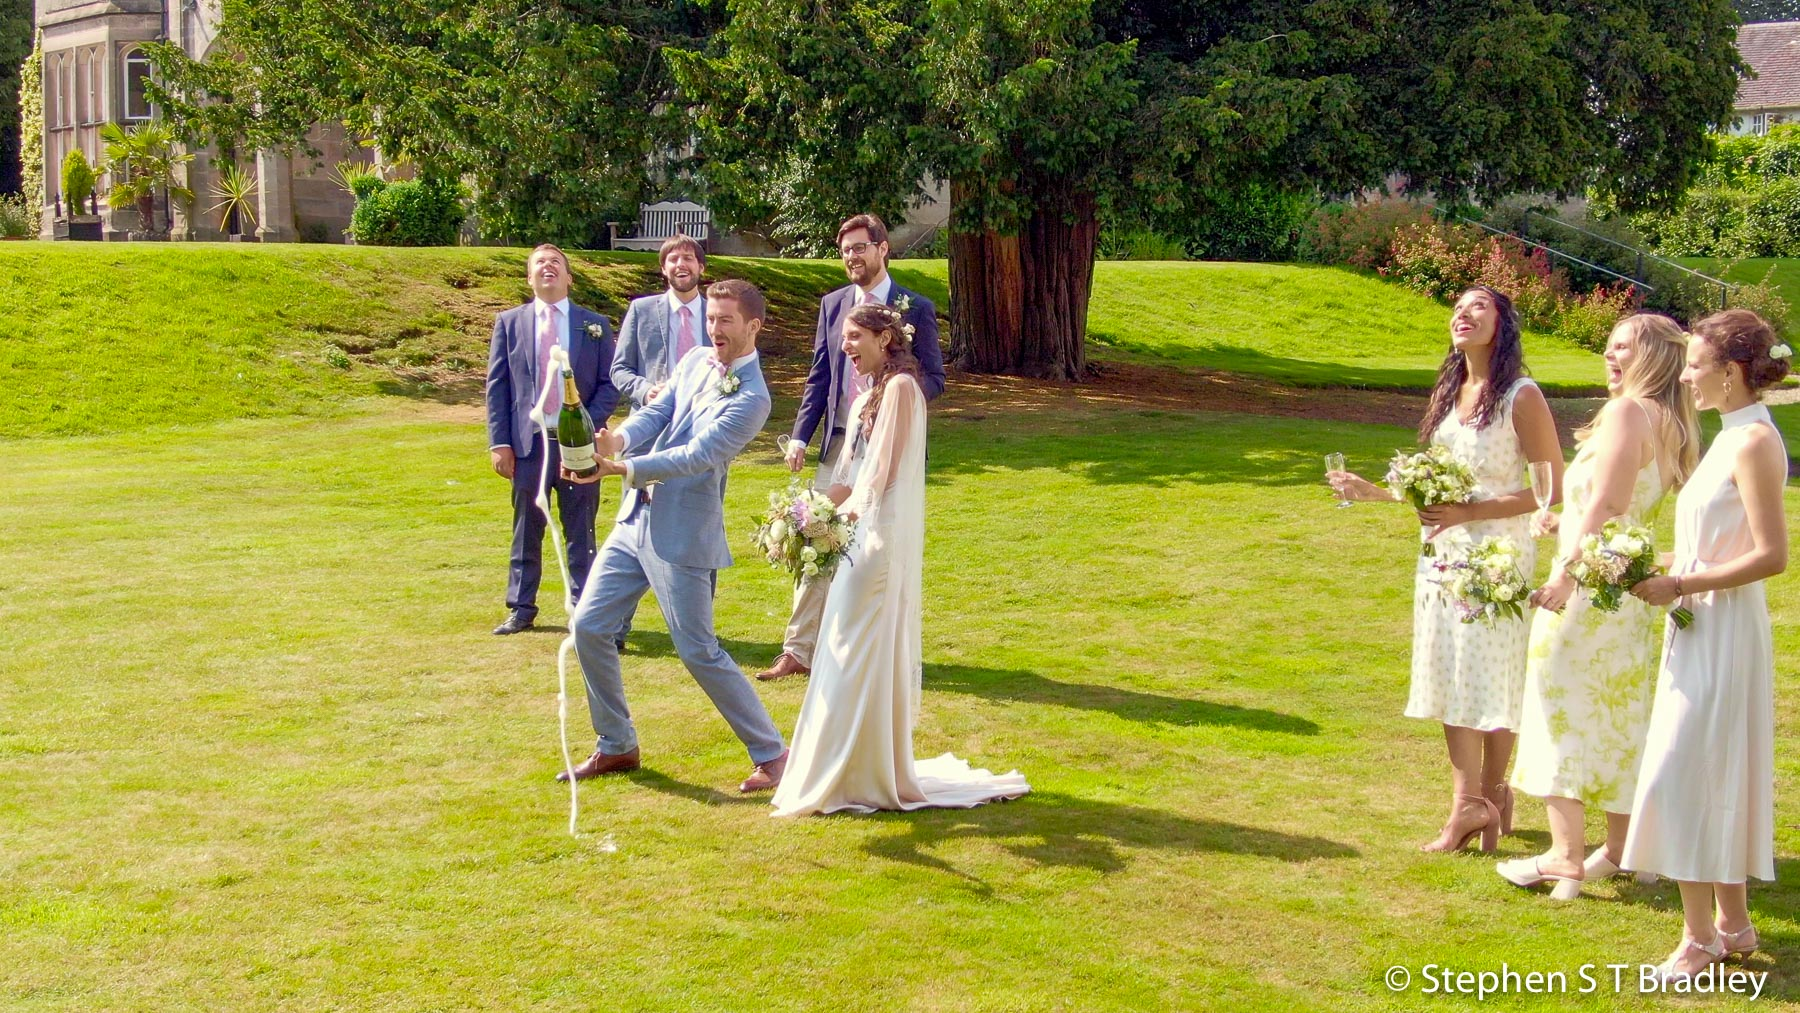 Aerial video of country house wedding at Birdsgrove, Derbyshire, UK, by Stephen S T Bradley - aerial drone photographer and video production services in Dublin and throughout Ireland. Screenshot reference 22